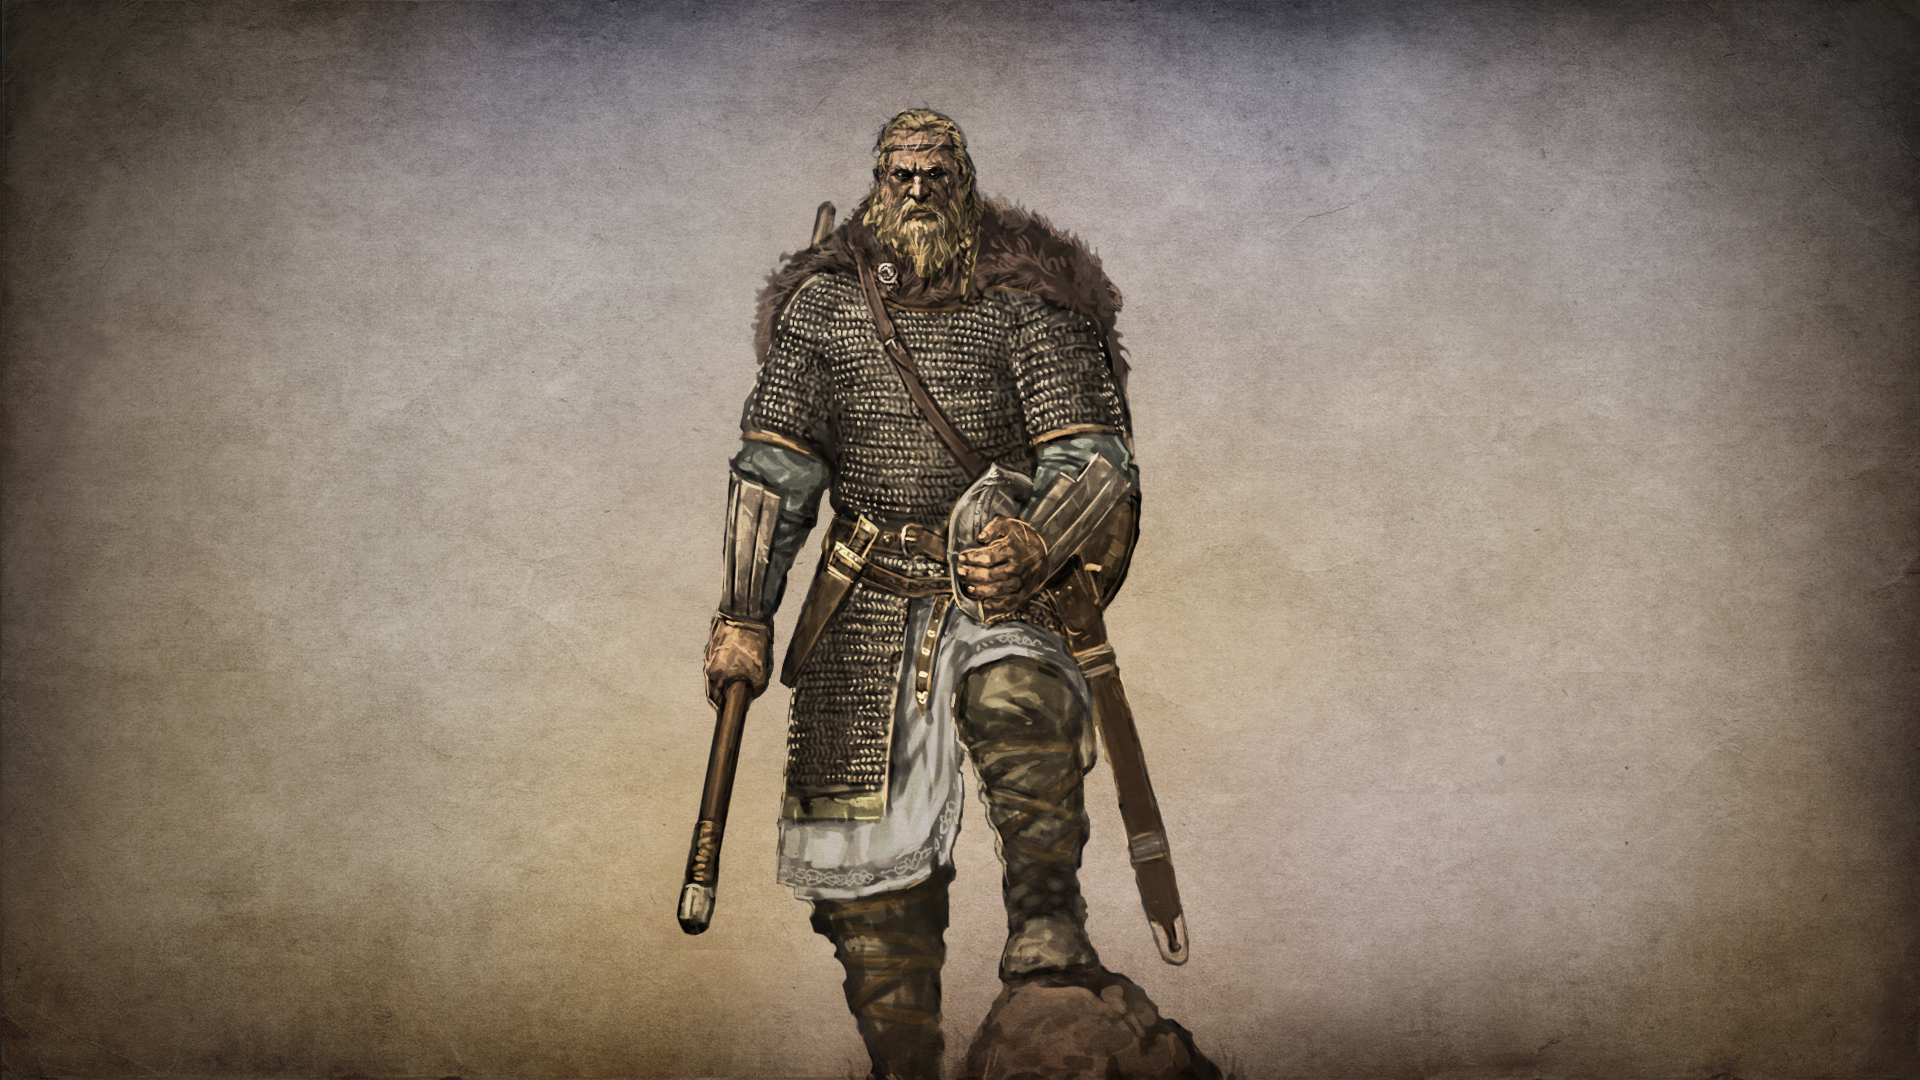 Free Download Mount And Blade Fantasy Warrior Armor Knight H